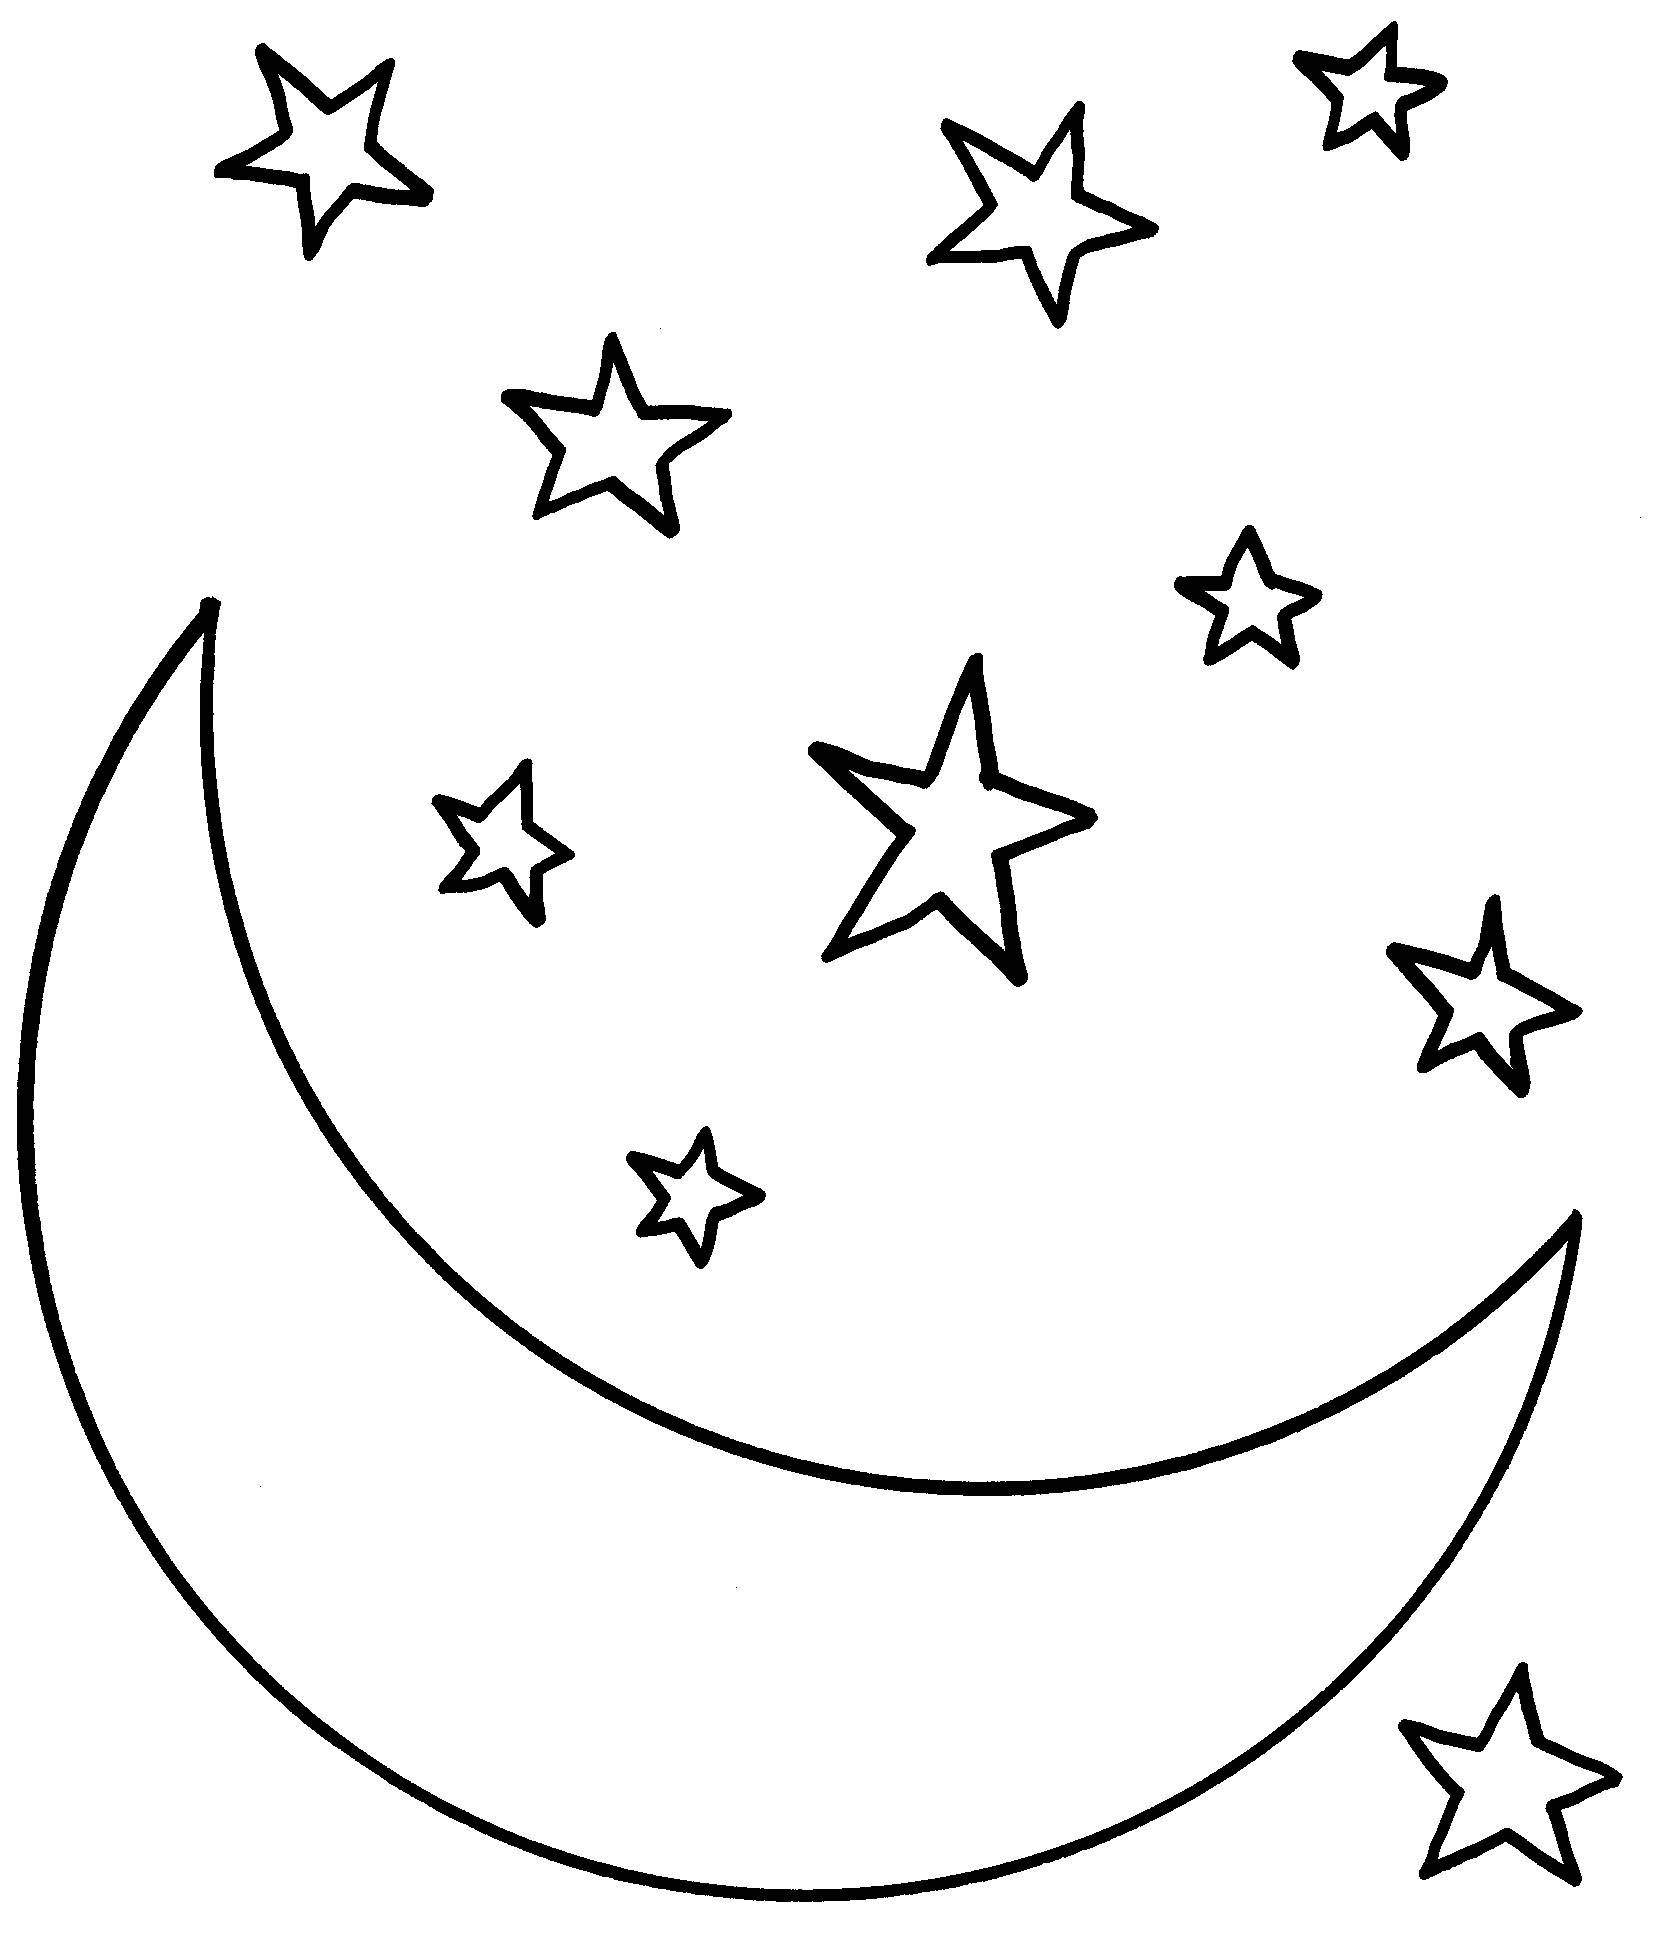 free coloring pages moon and stars | Free Coloring Pages Of Stars And Moon | FHE | Moon ...